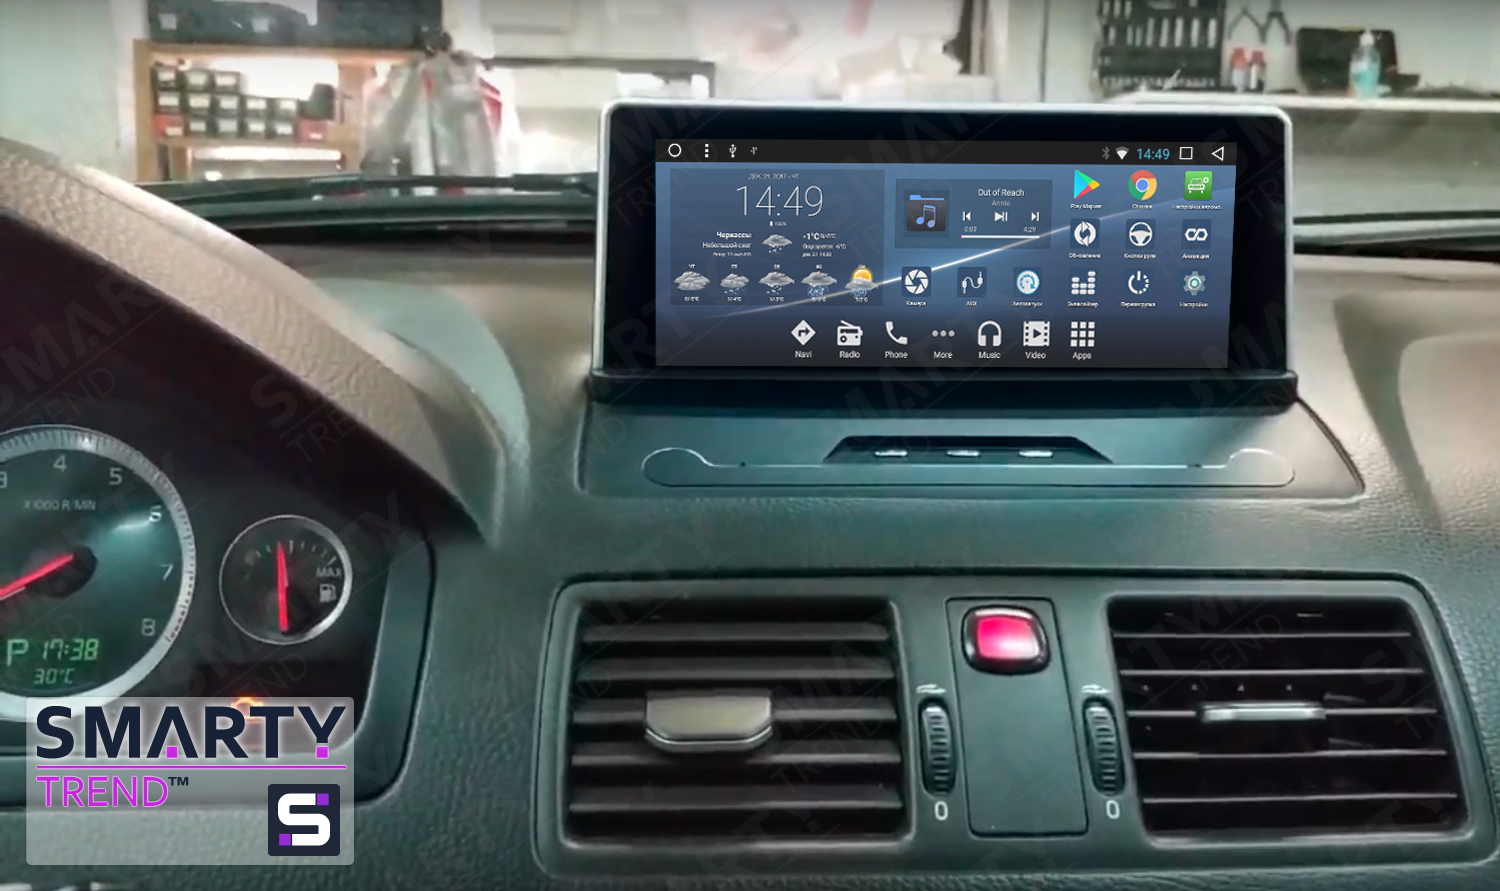 Volvo XC90 Android Car Stereo Navigation In-Dash Head Unit